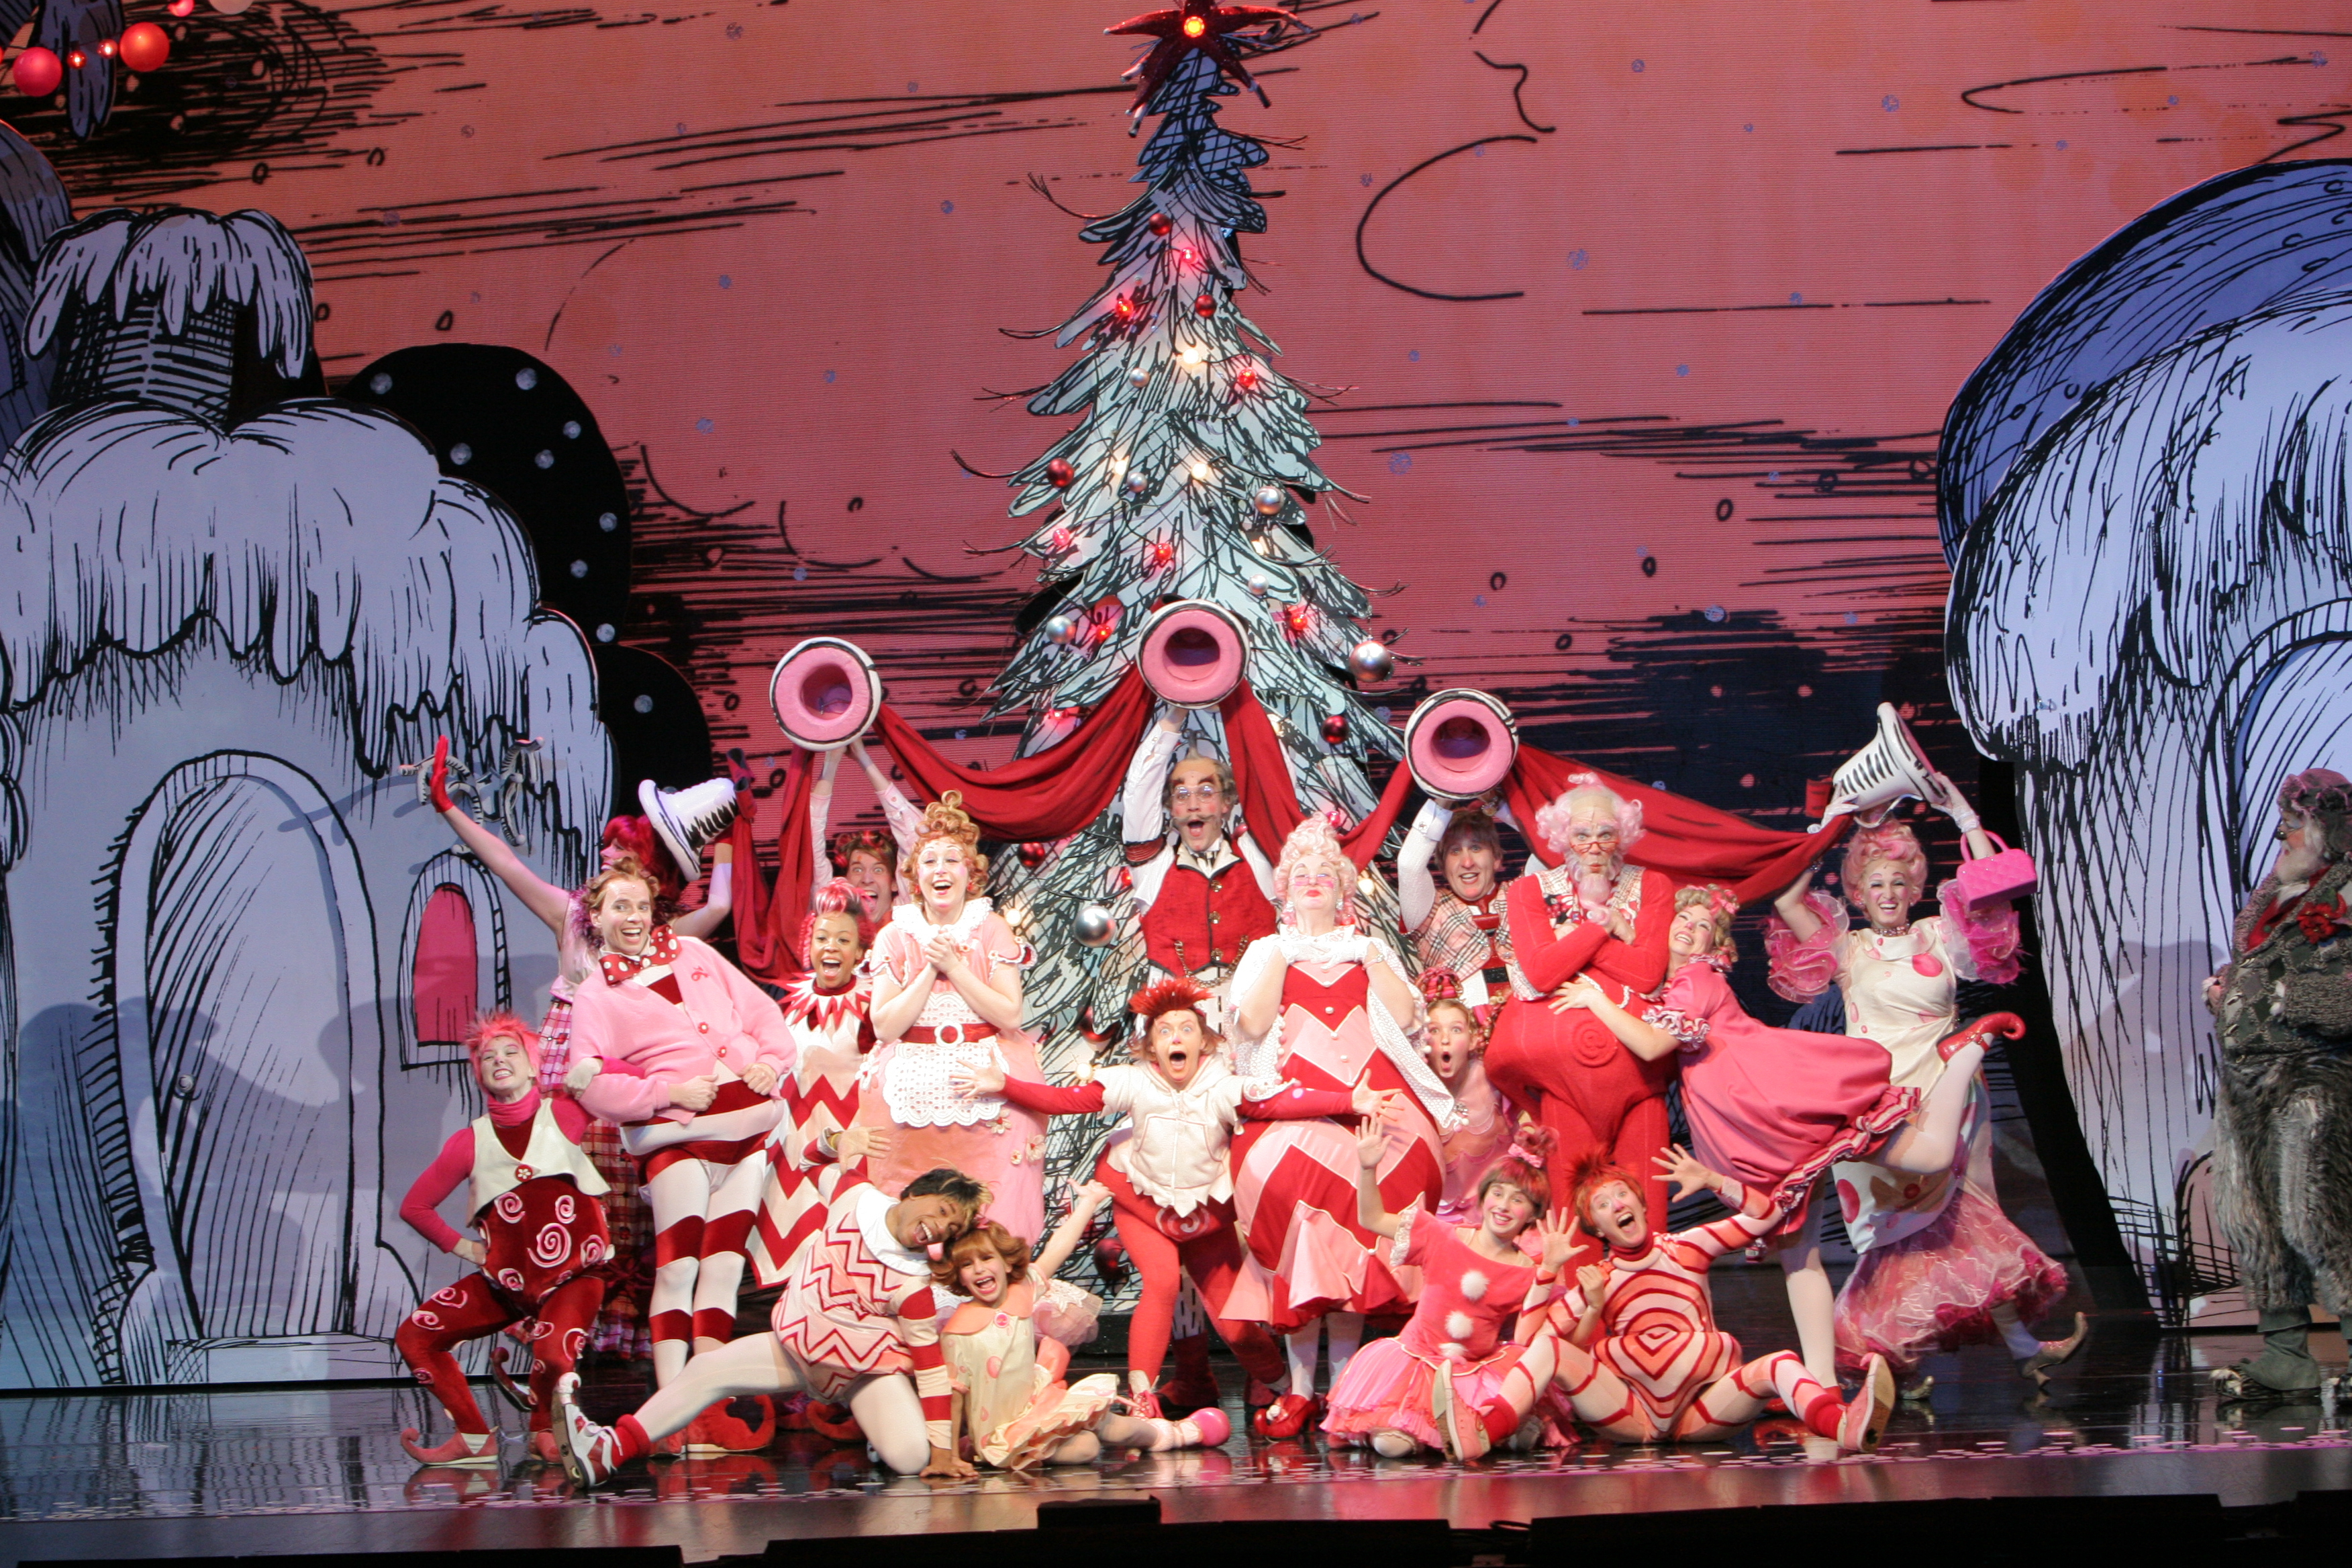 from the music dr seuss how the grinch stole christmas taking place - How The Grinch Stole Christmas 2015